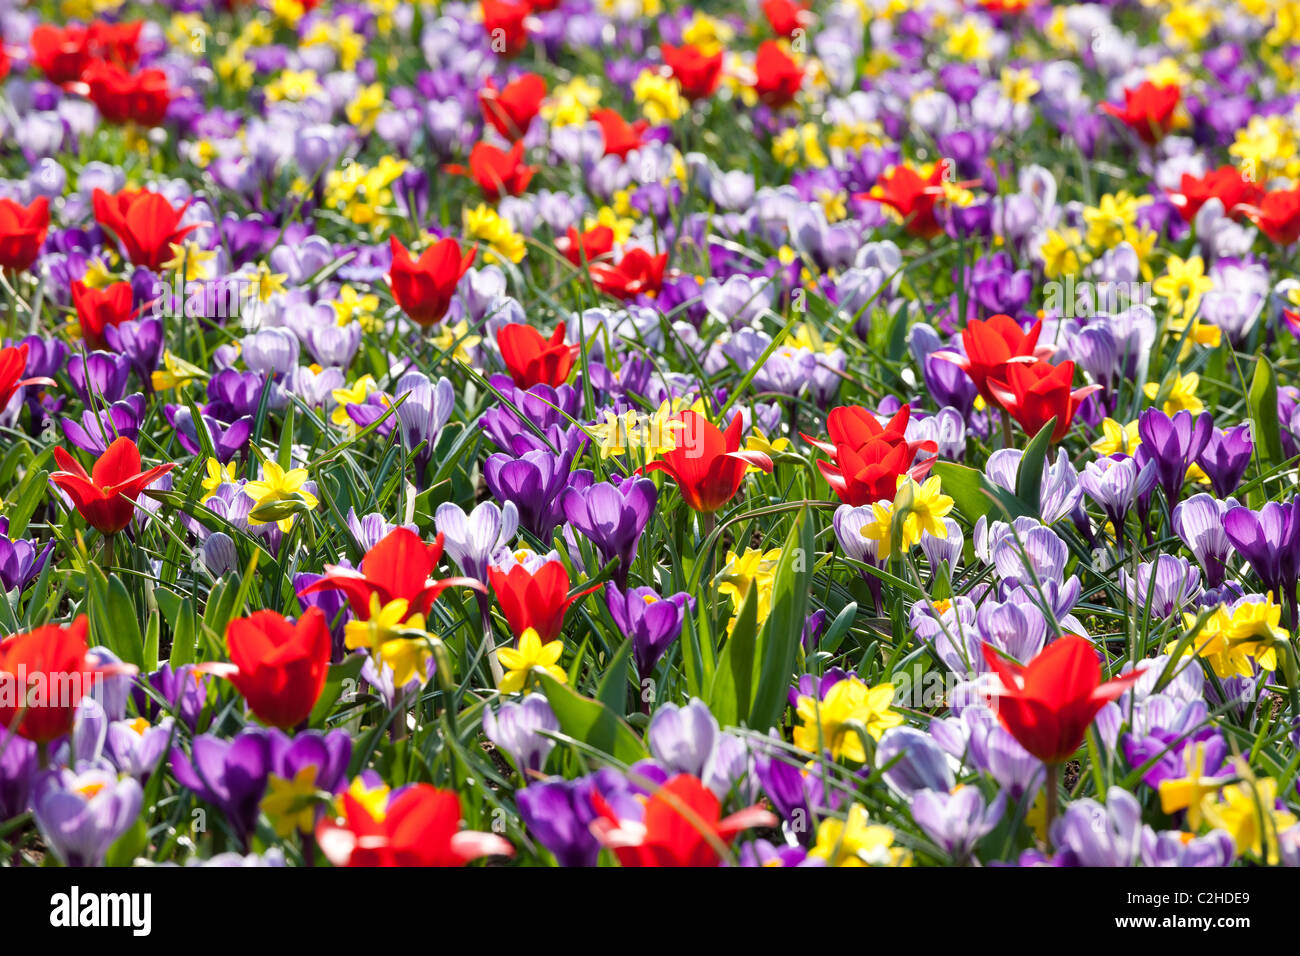 https://c7.alamy.com/comp/C2HDE9/a-mixed-flower-bed-with-daffodils-tulips-and-crocuses-like-a-wild-C2HDE9.jpg